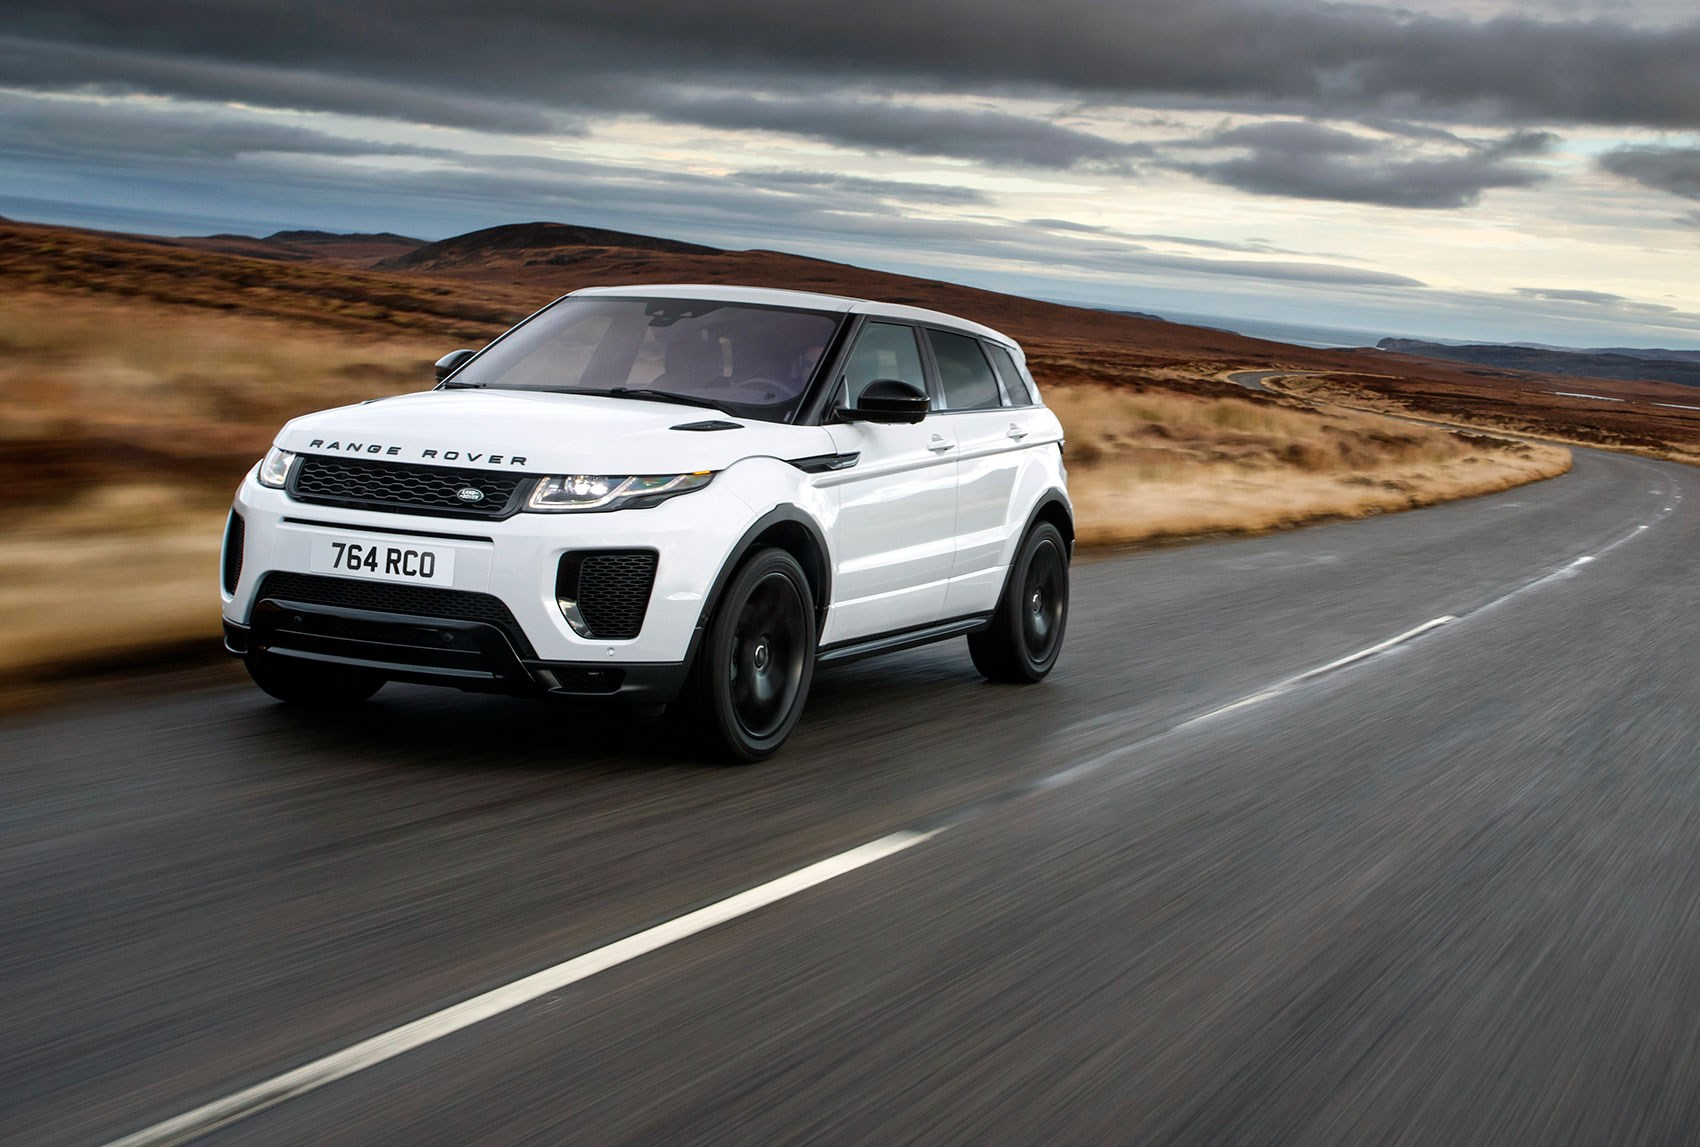 Discovery Range Rover >> Land Rover Discovery Sport Range Rover Evoque 2018 model year engine specs by CAR Magazine